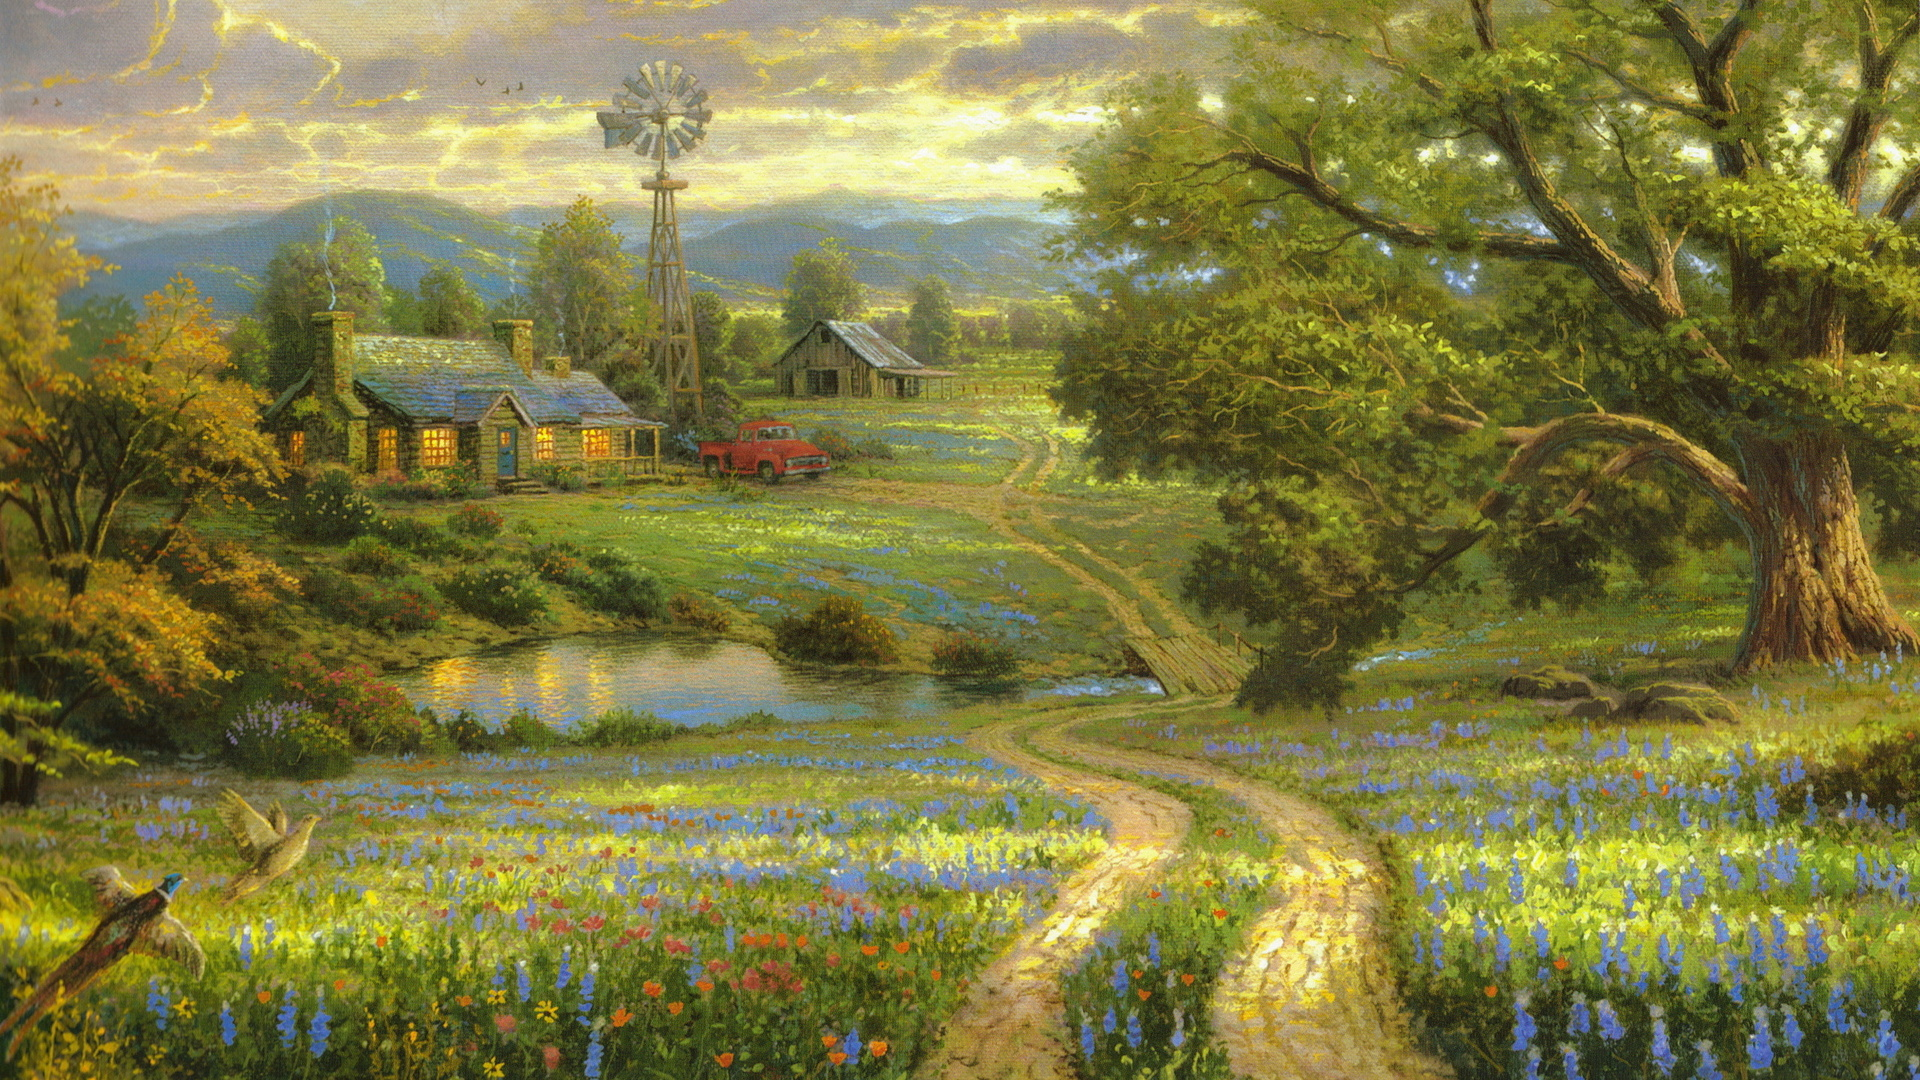 Art Wallpaper Set 1 Thomas Kinkade Paintings 171 Awesome